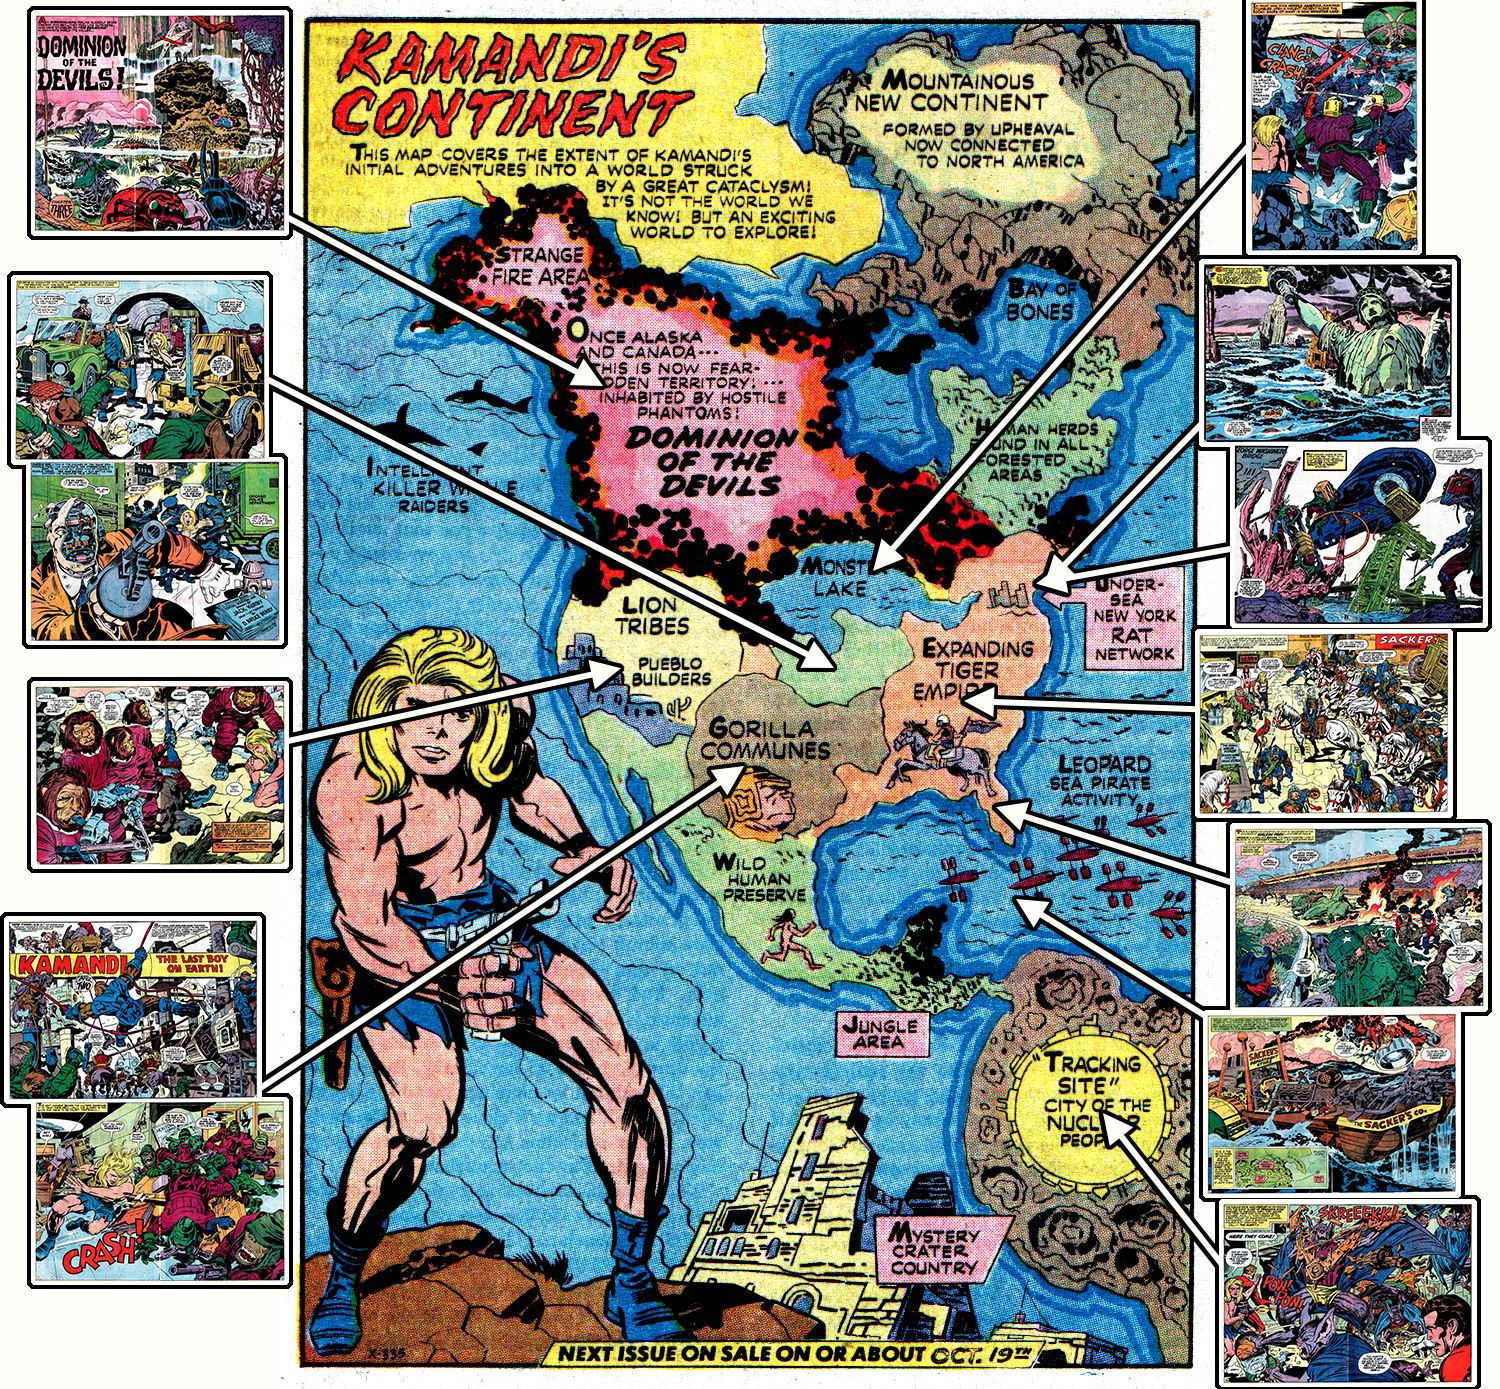 the original map is the center image those little boxes are some of the splash panels over the next 28 issues to show story locations